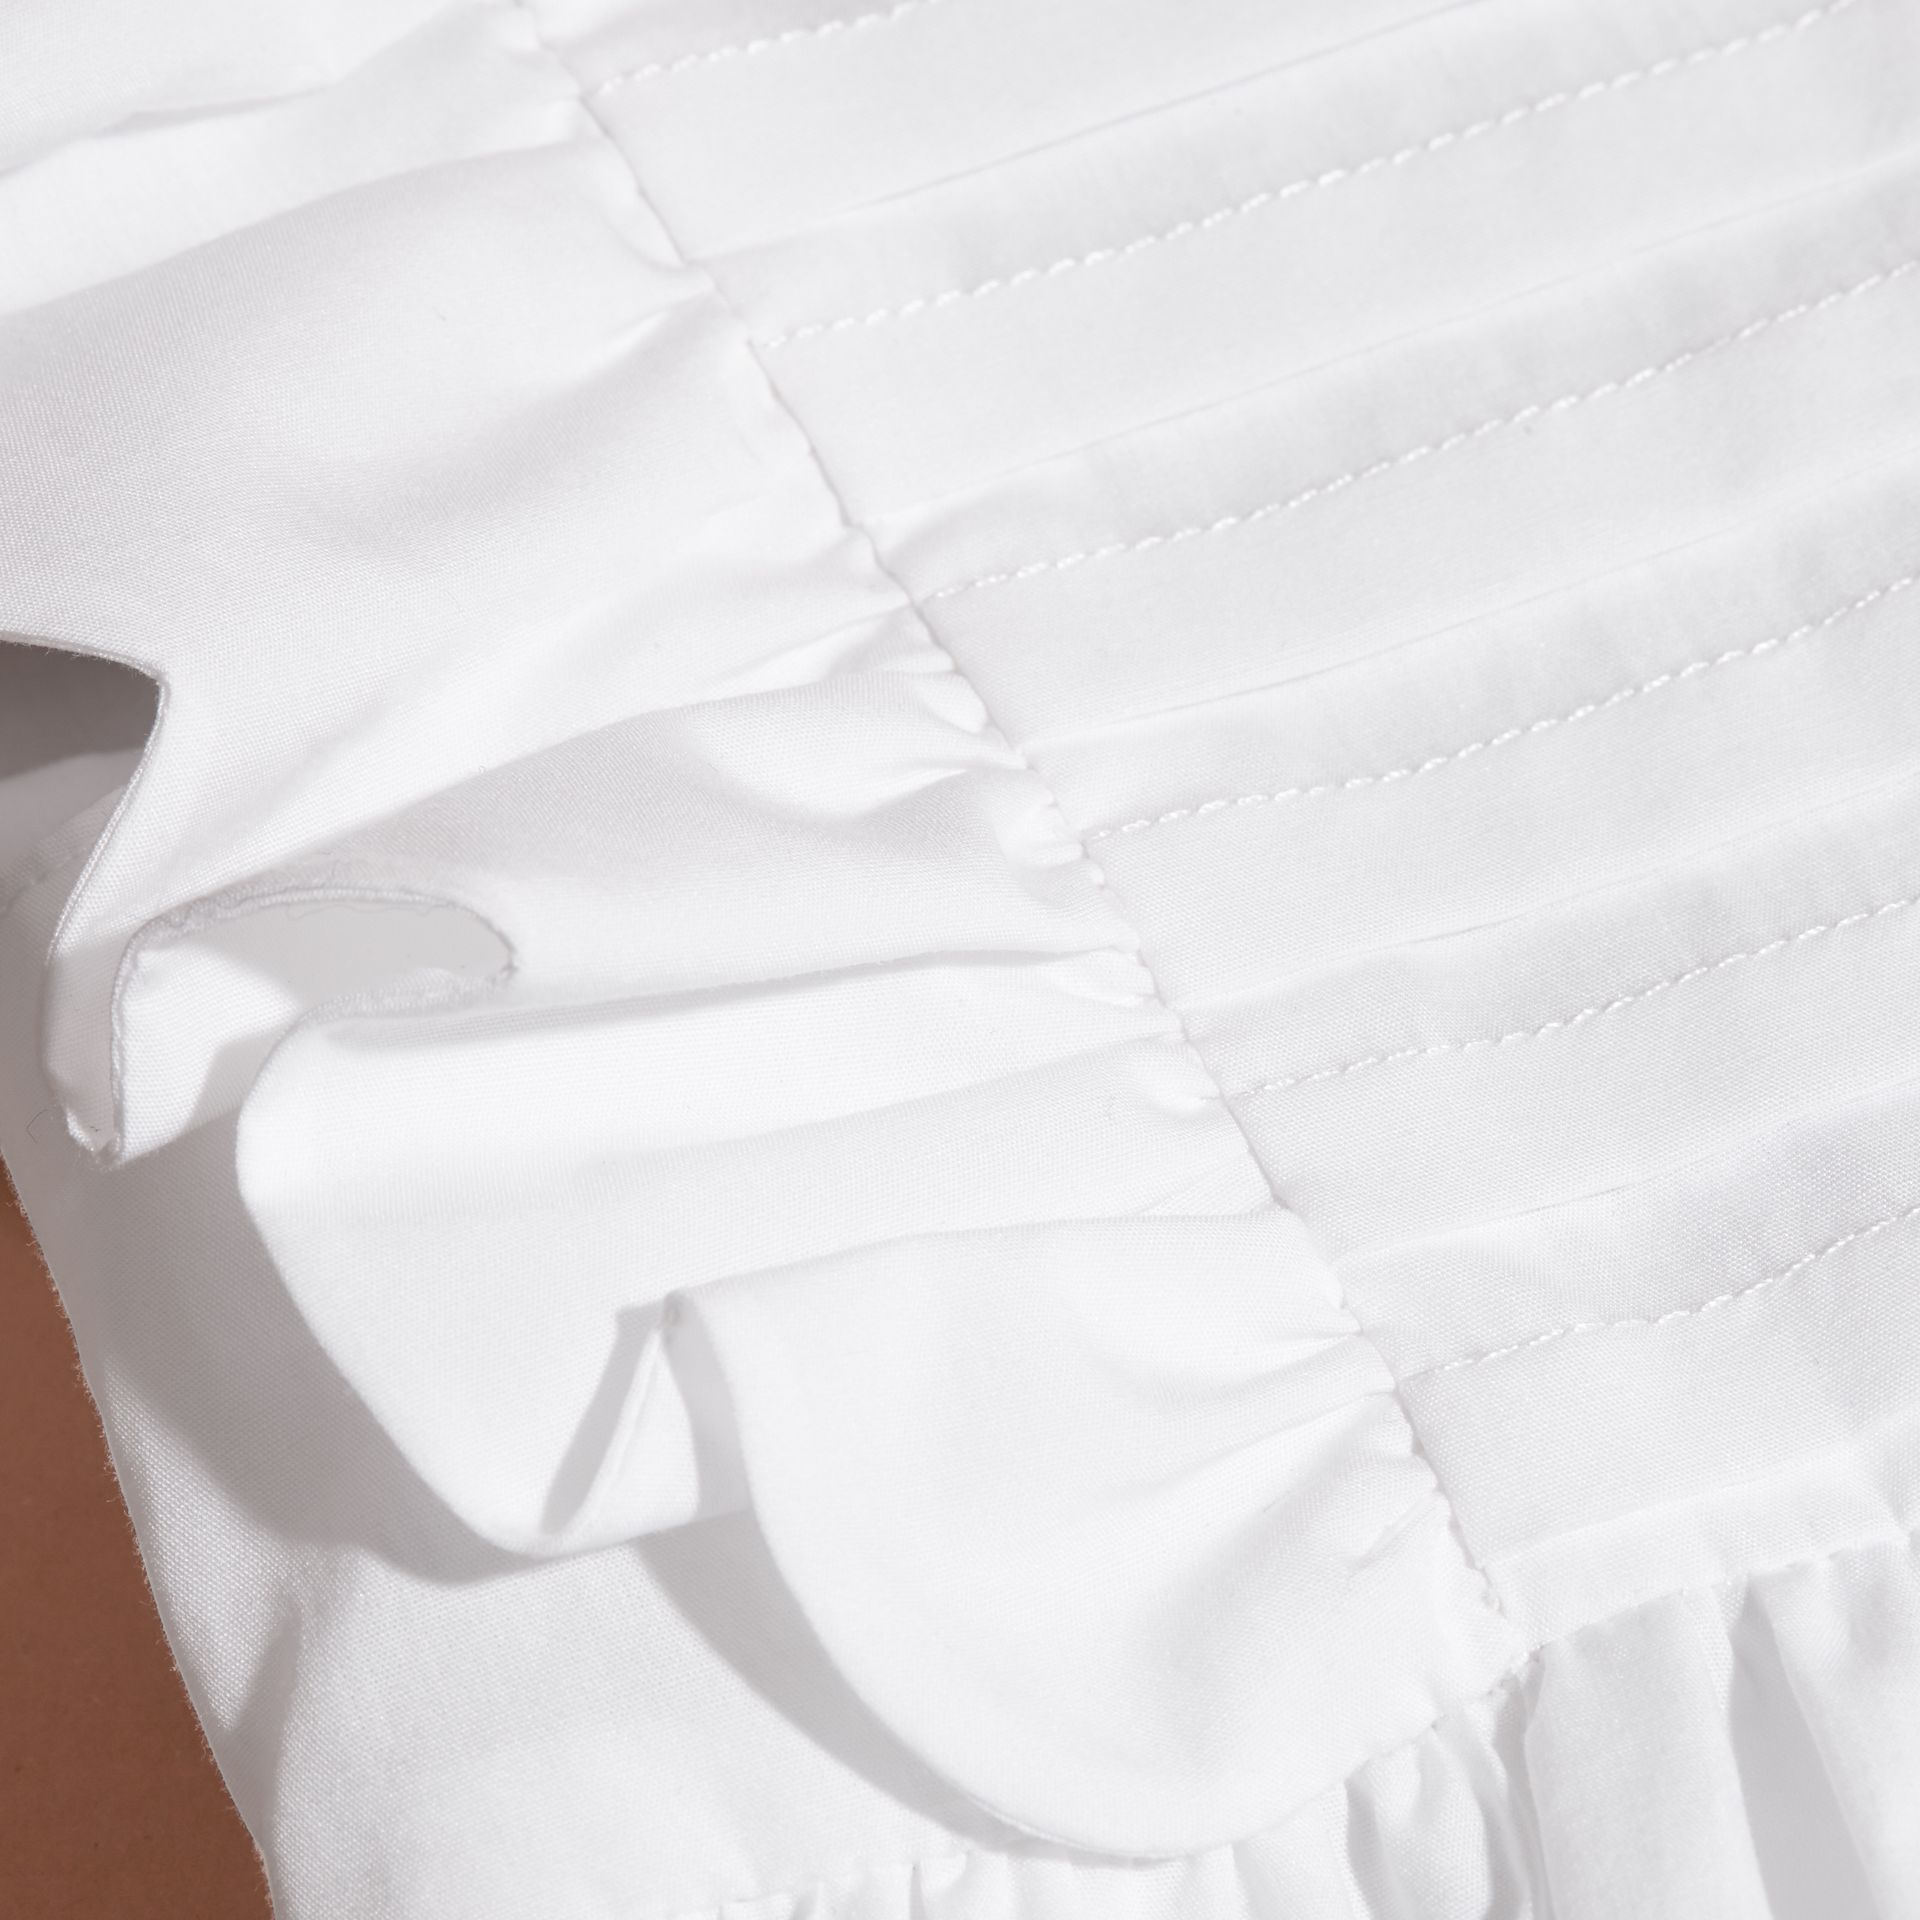 Ruffle and Pleat Detail Cotton Dress | Burberry - gallery image 2